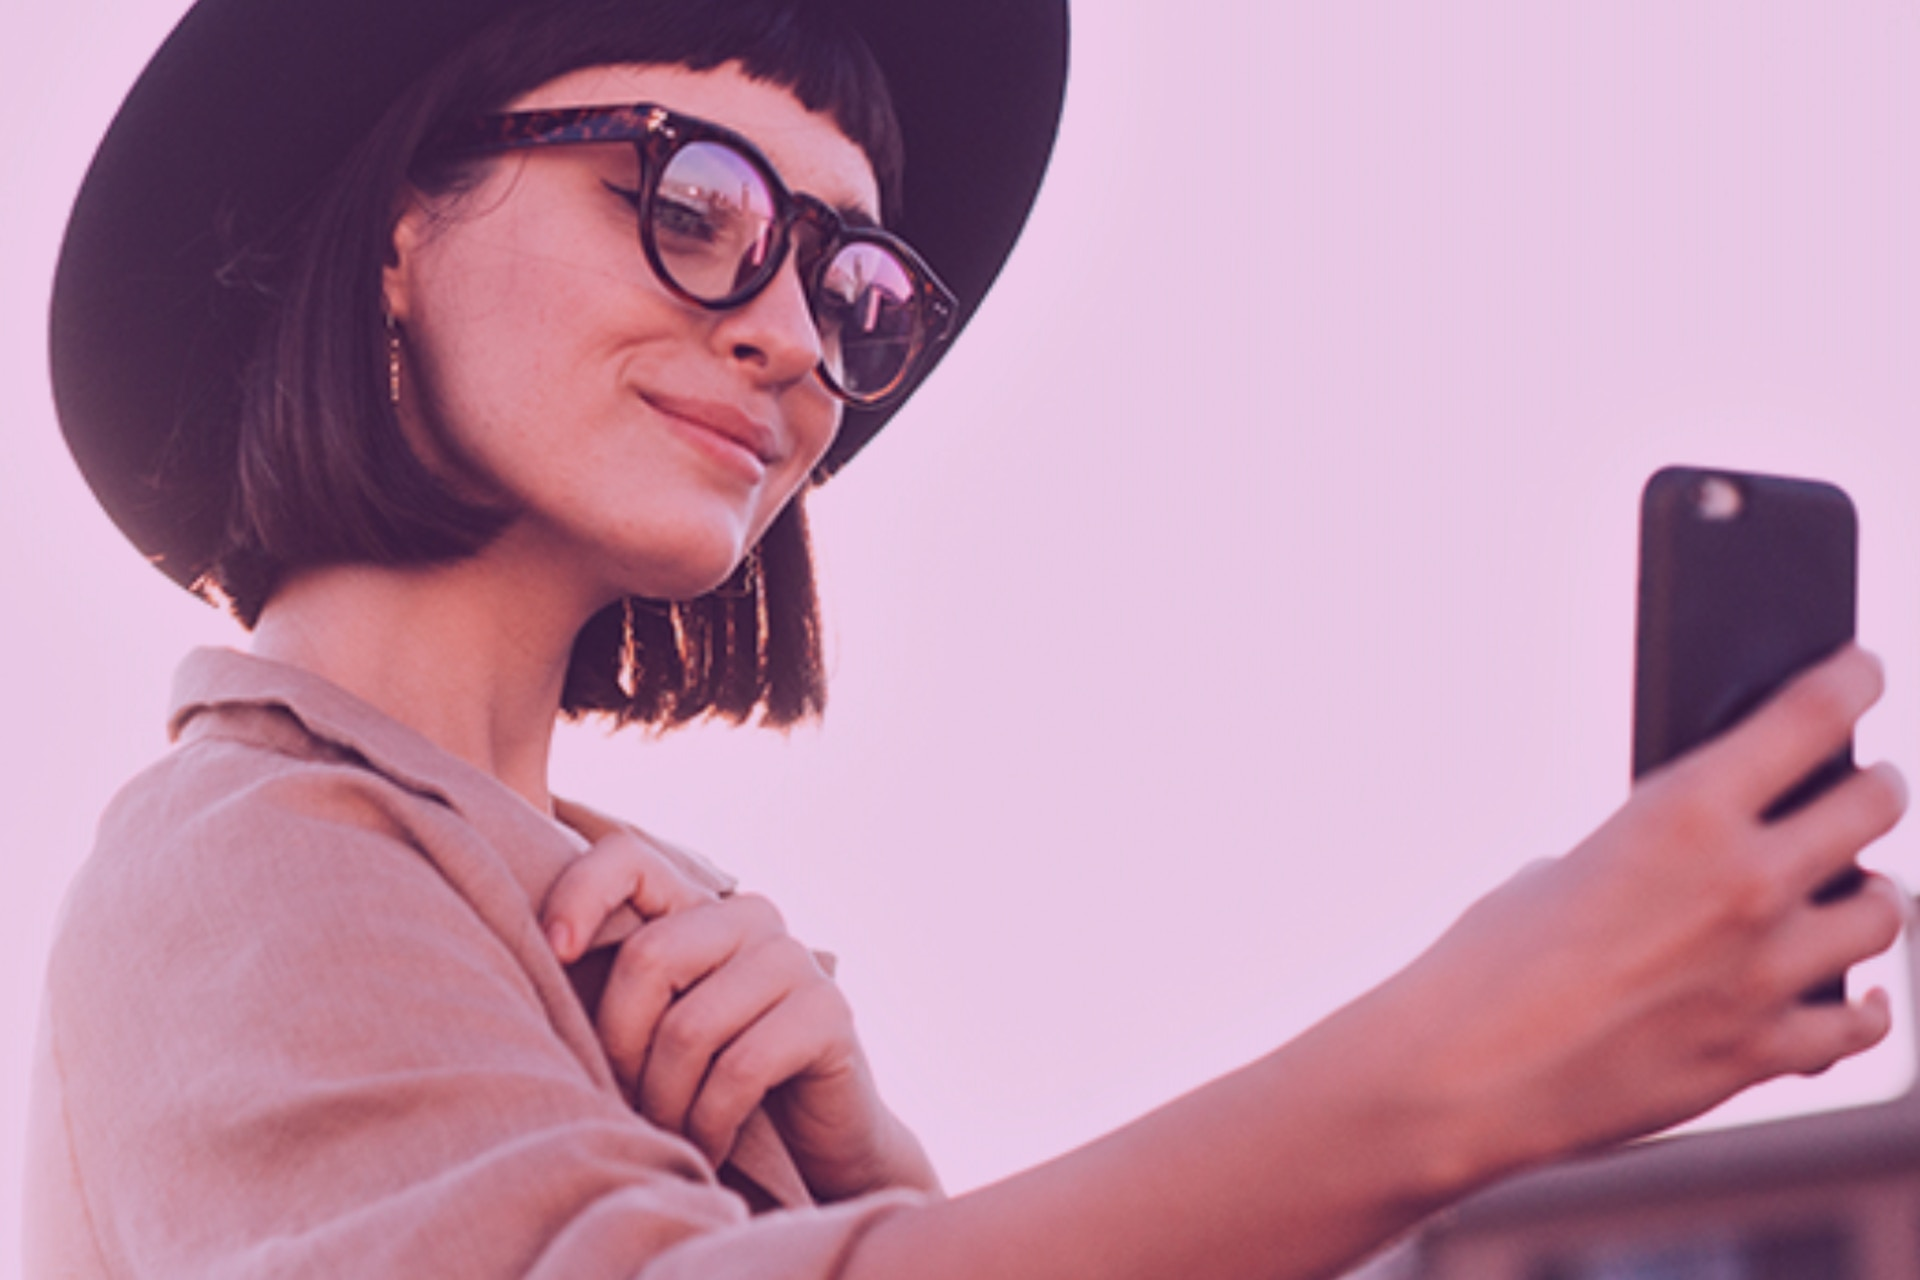 User-generated content influencer